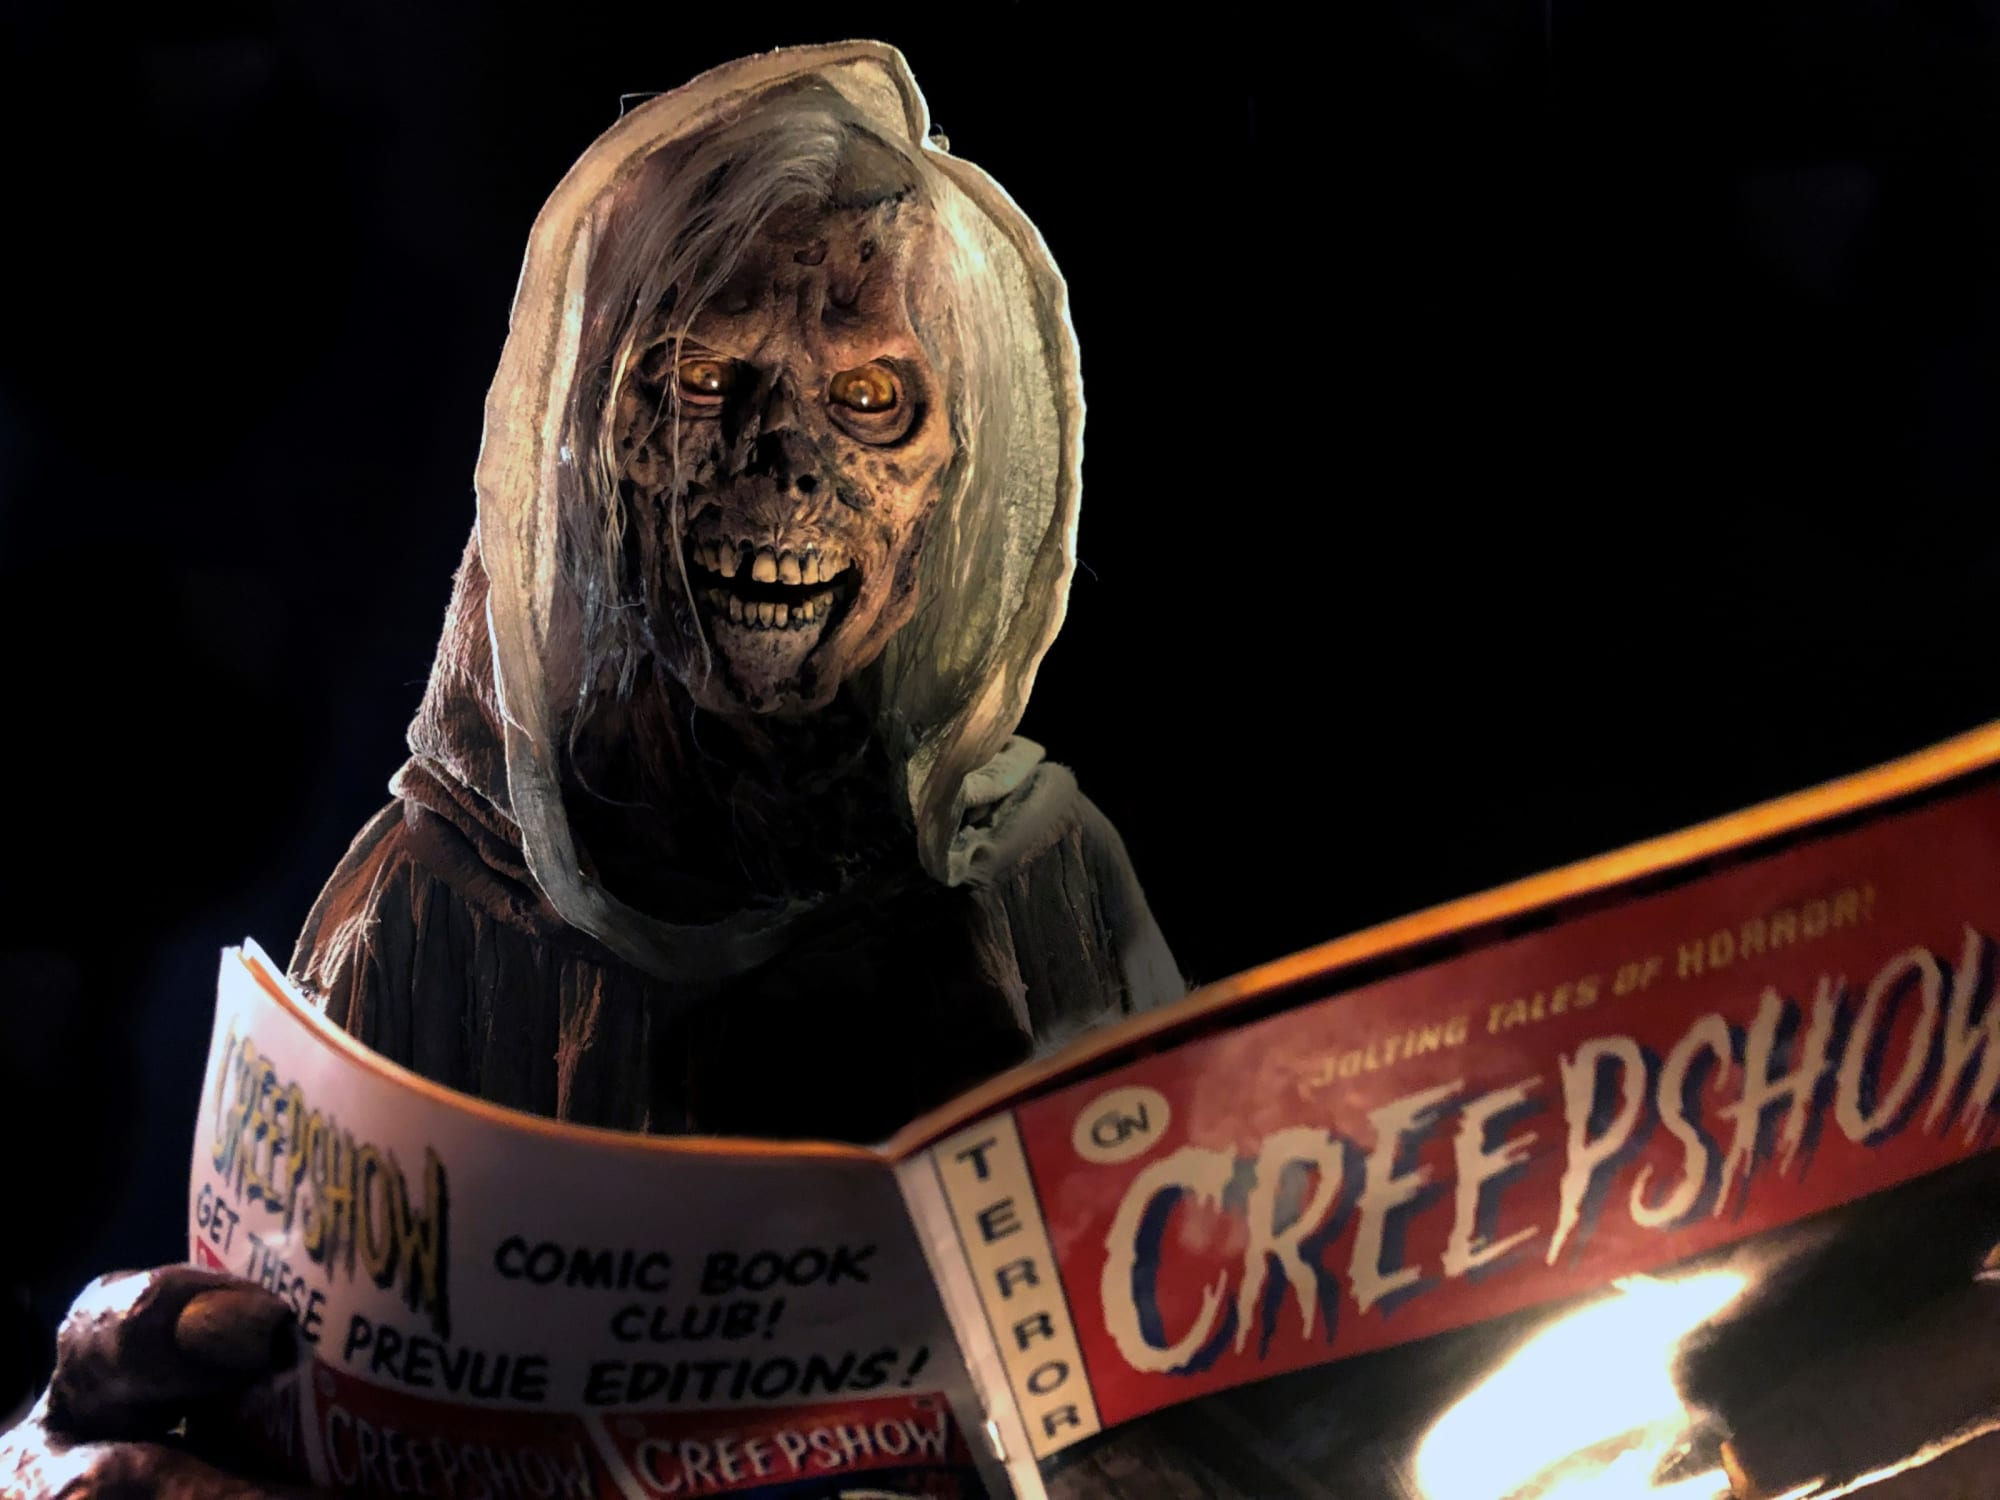 NYCC 2020: Creepshow and other dream horror panel suggestions